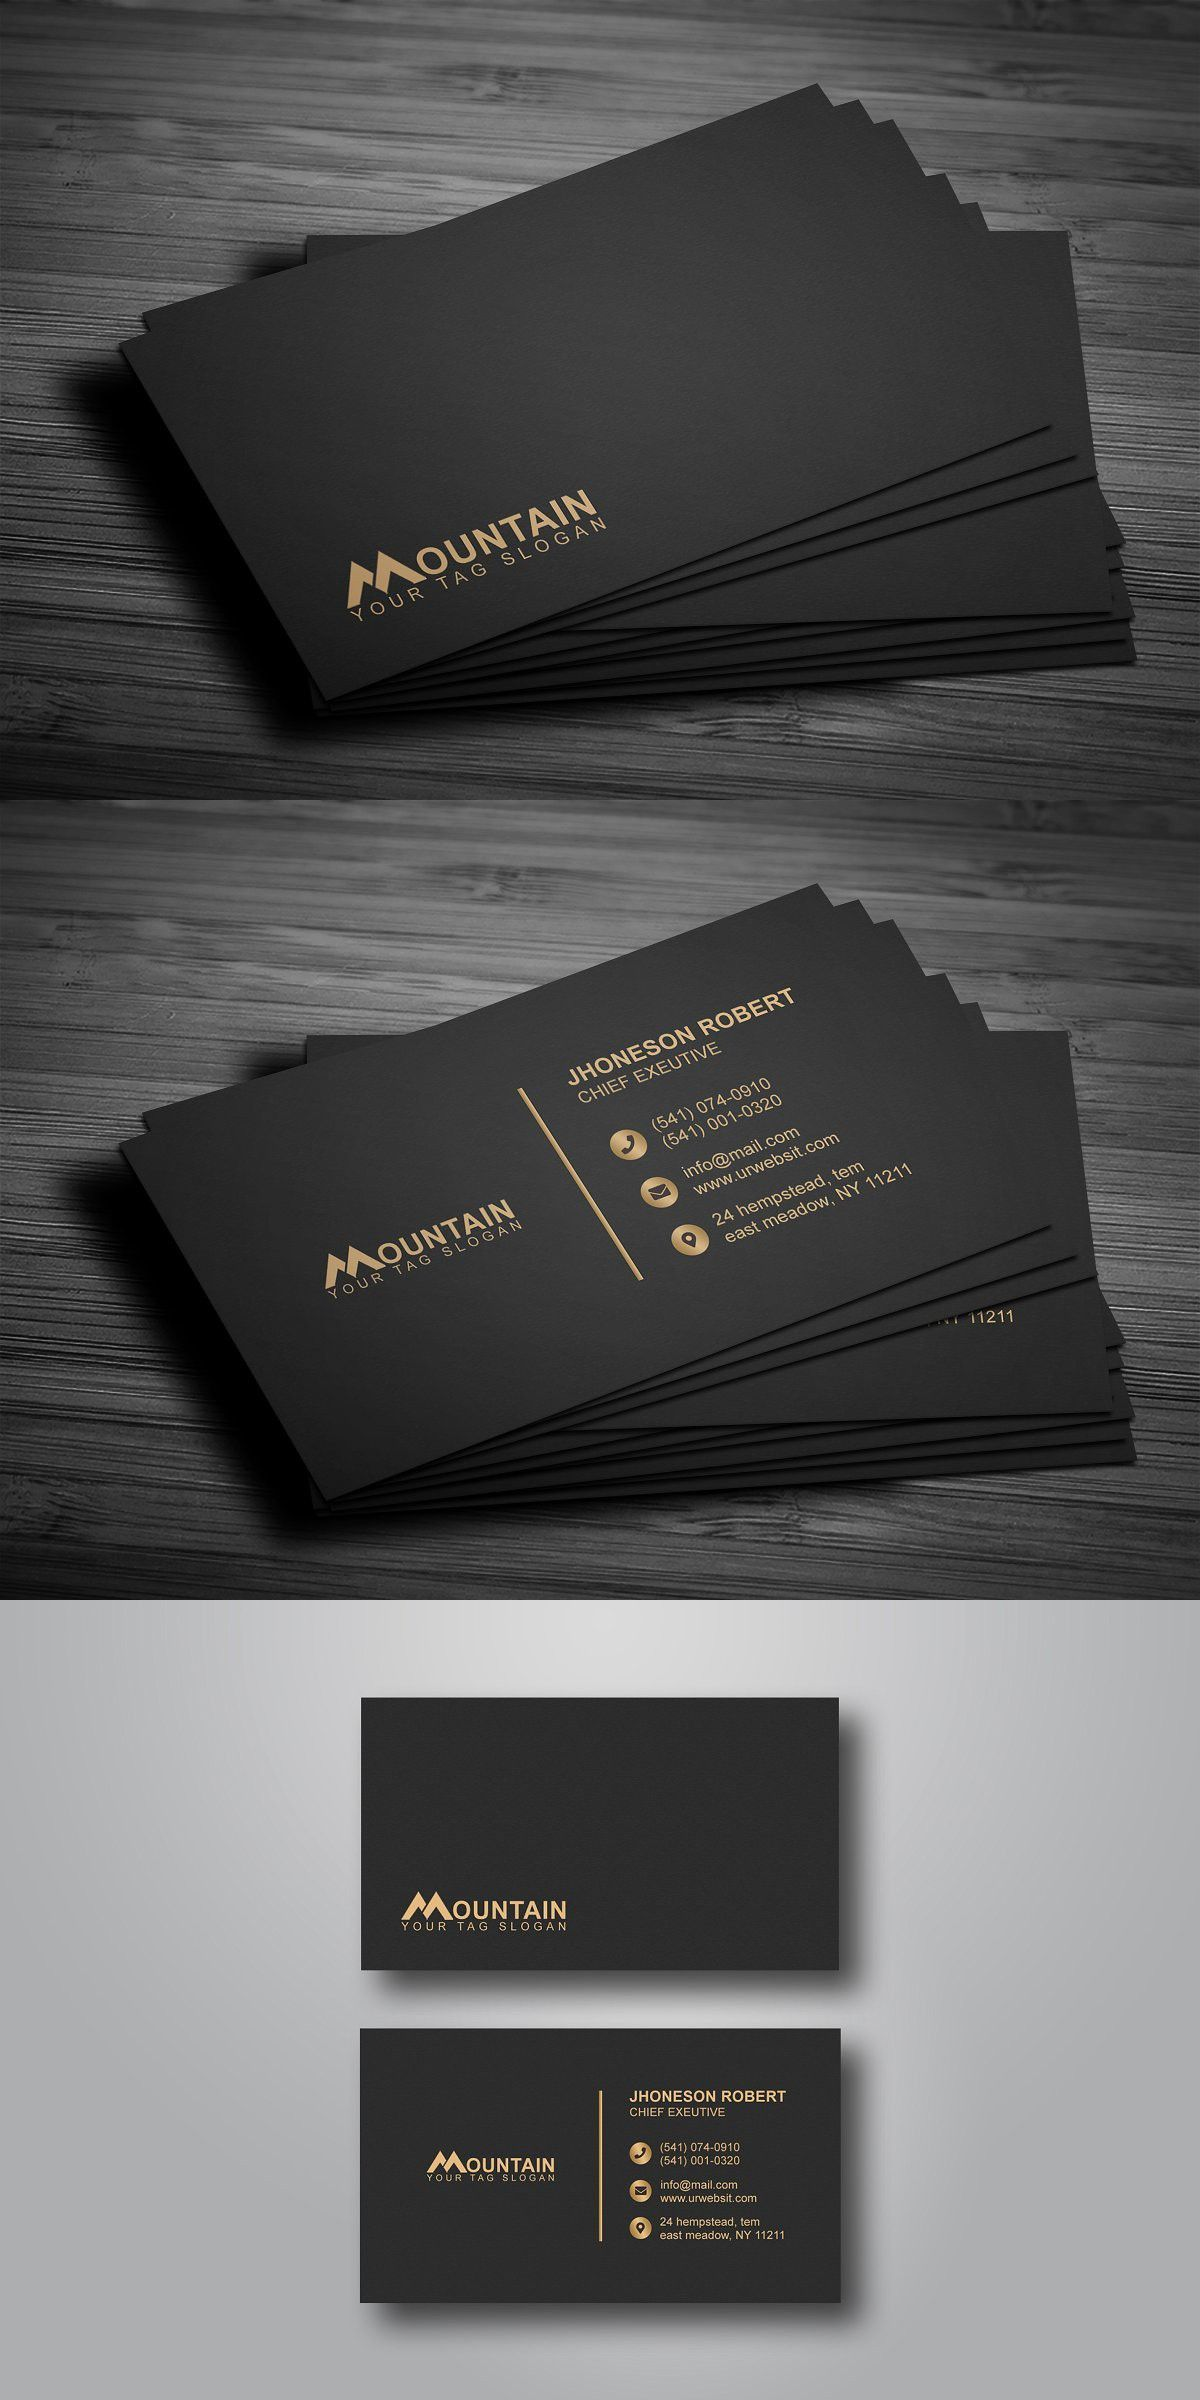 Get Everything You Need Starting At 5 Fiverr Business Card Design Black Business Card Design Simple Business Cards Layout